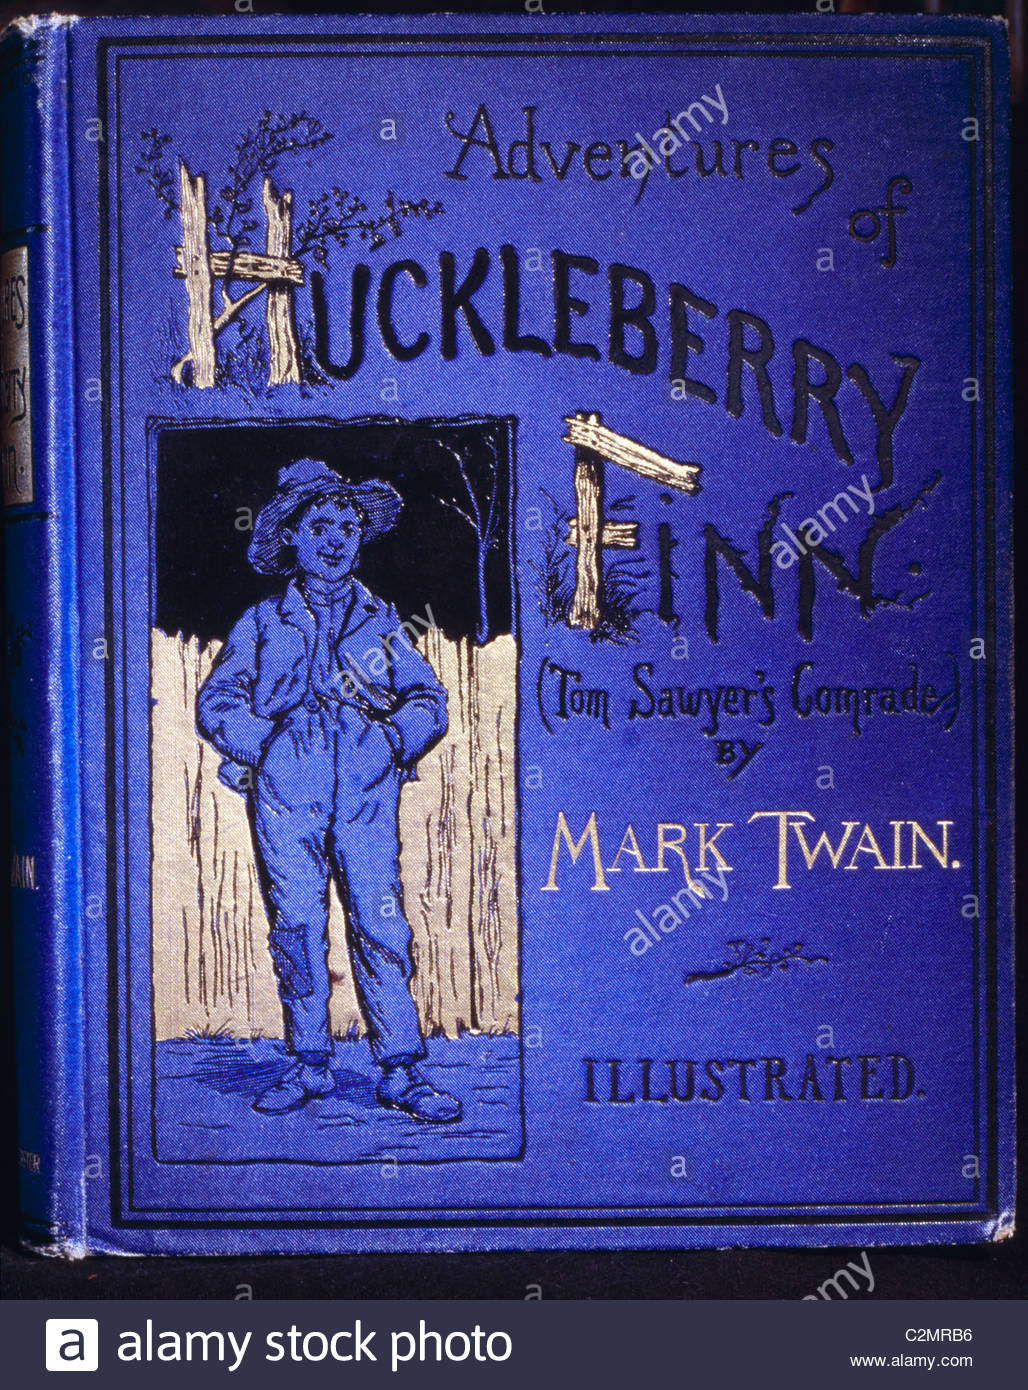 """inside the great mind of huck finn in the adventures of huckleberry finn """"the adventures of huckleberry finn"""" is written from the perspective of a thirteen-year-old boy named huckleberry (huck) finn who is the son of the town's local drunk although he is uneducated and unruly, he is a clever boy who is definitely capable of making up his own mind about things, especially moral issues like slavery."""